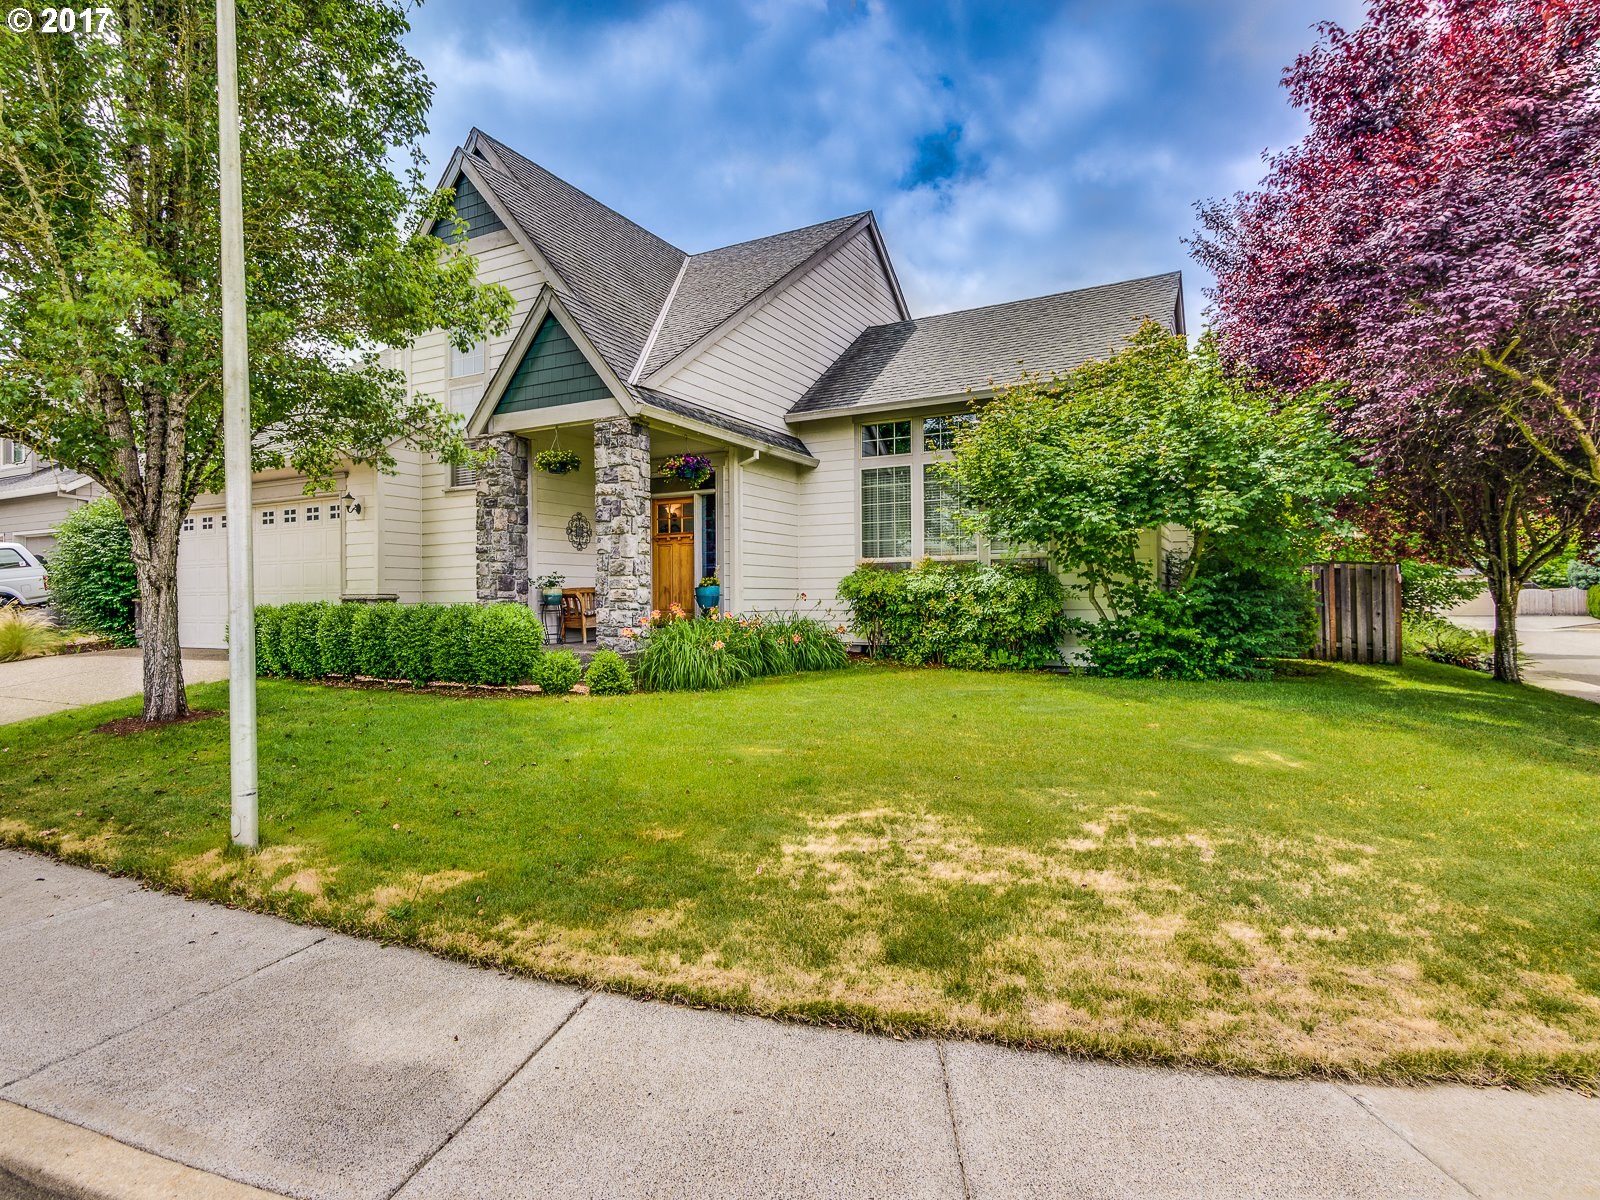 1475 N HAZELNUT CT, Canby, OR 97013